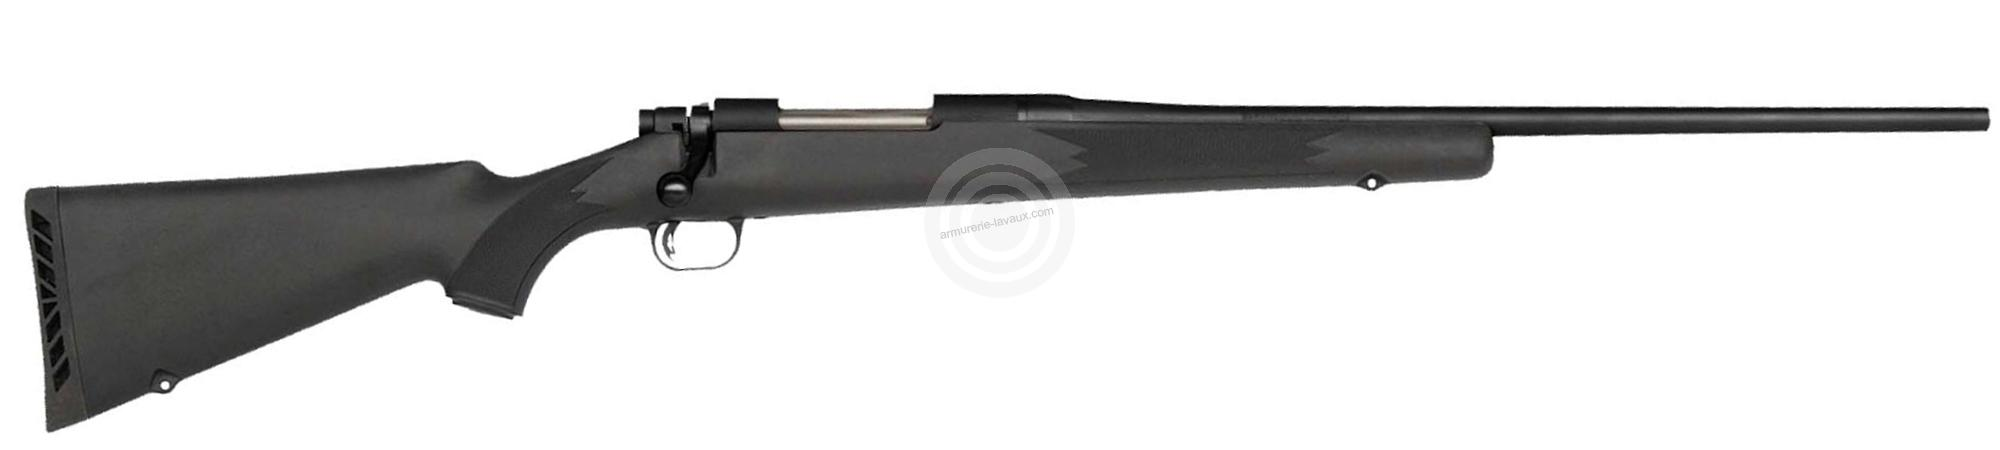 Carabine MOSSBERG 100 ATR Synthétique cal.243 win